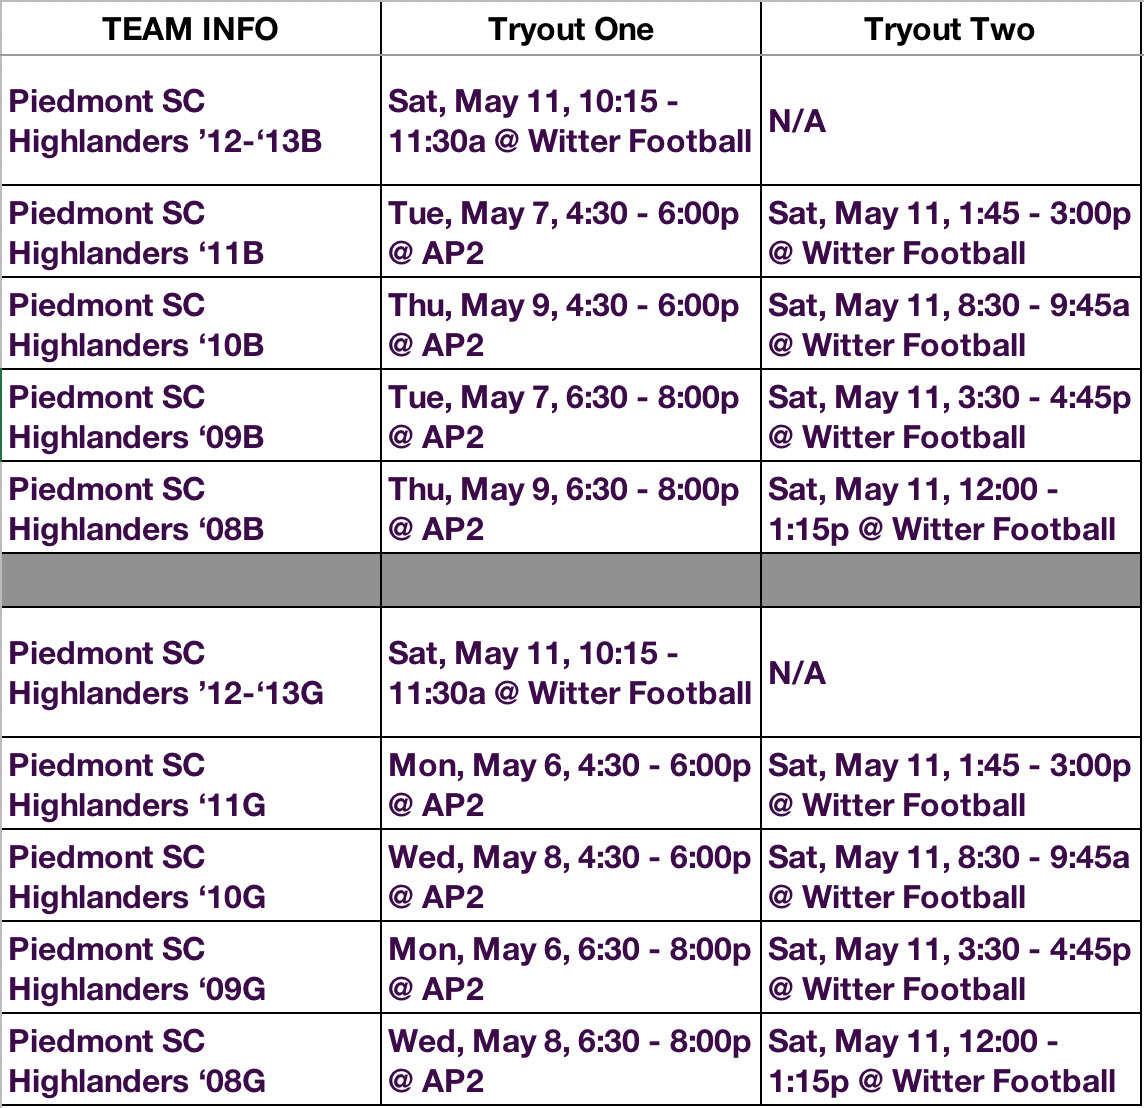 psc-competitive-tryouts-schedule-2019